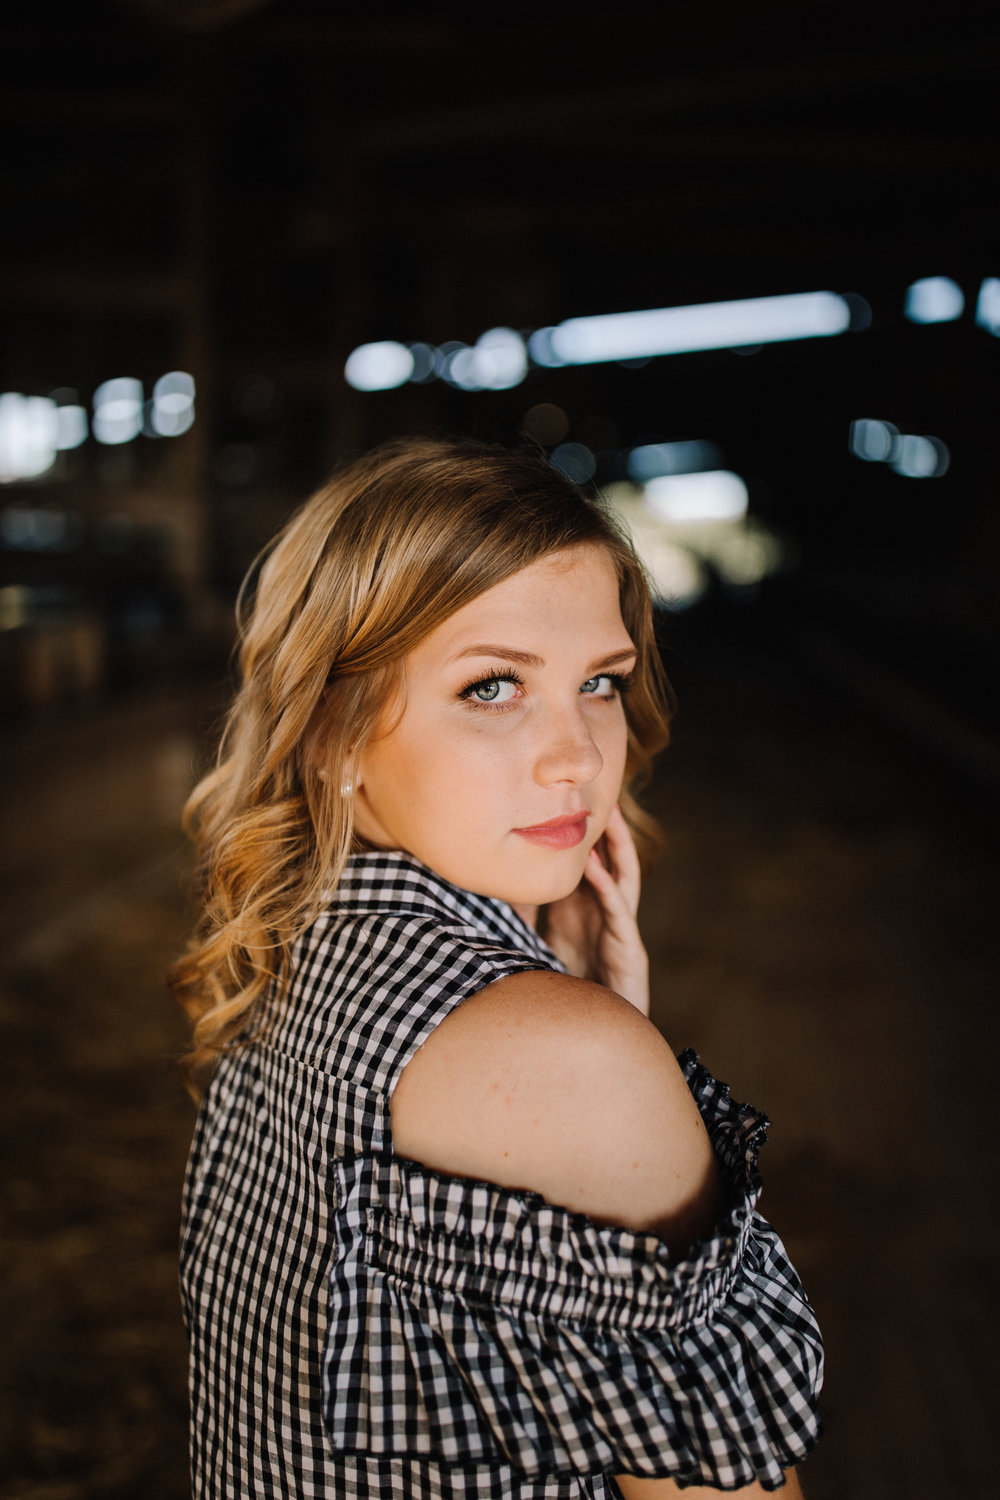 billie-shaye style photography - www.billieshayestyle.com - class of 2019 - senior portrait experience - country farm creek crop land - nashville tennessee-3698.jpg